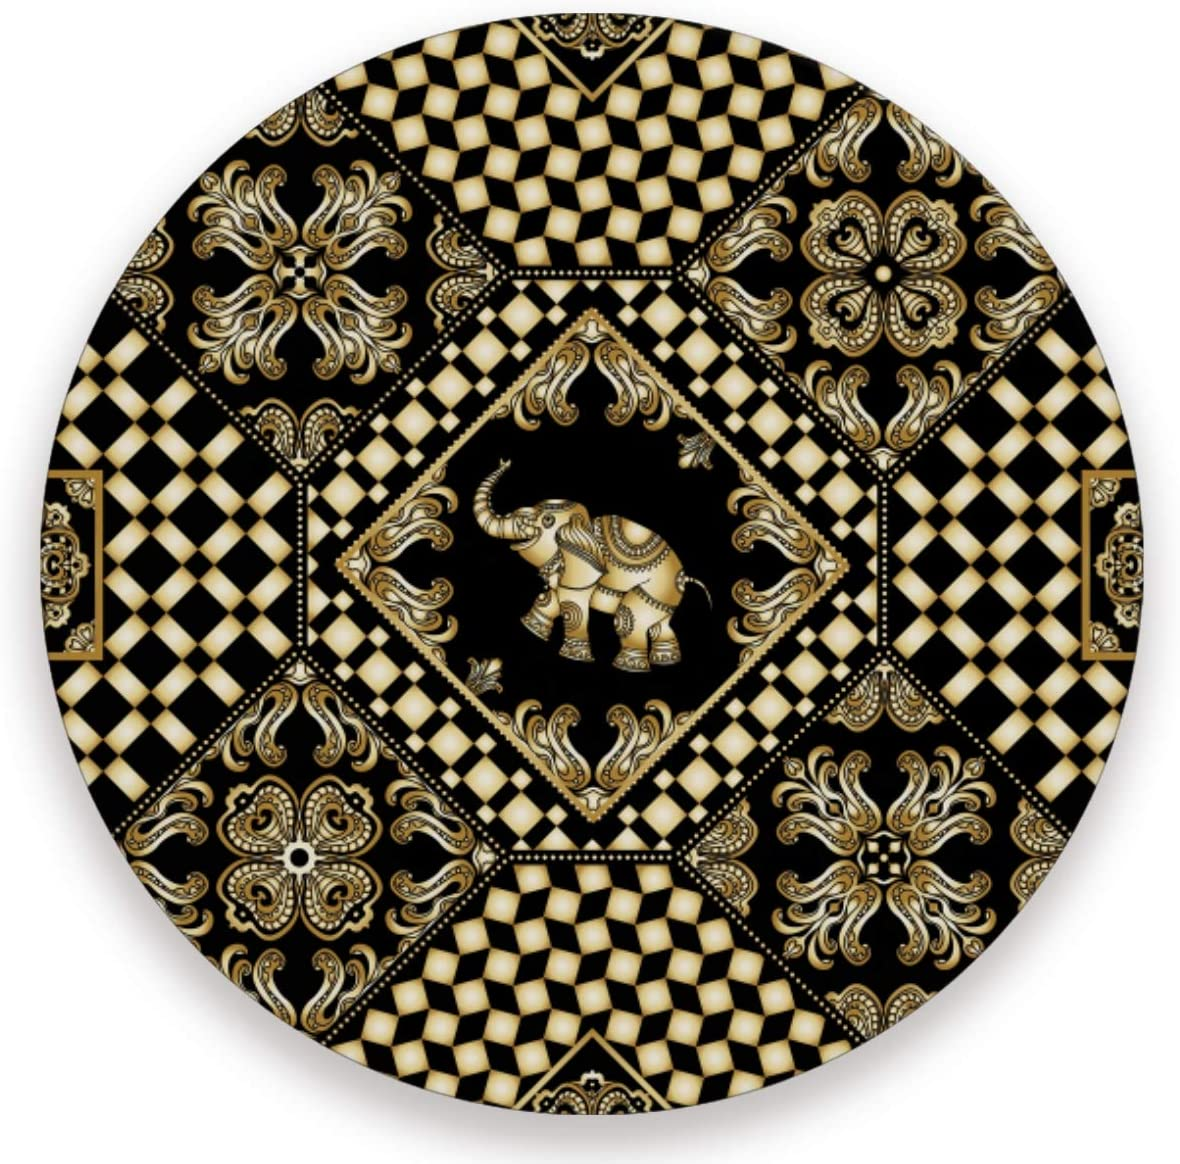 Olinyou Vintage Gold Elephant Geometric Plaid Coaster for Drinks 1 Pieces Absorbent Ceramic Stone Coasters with Cork Base